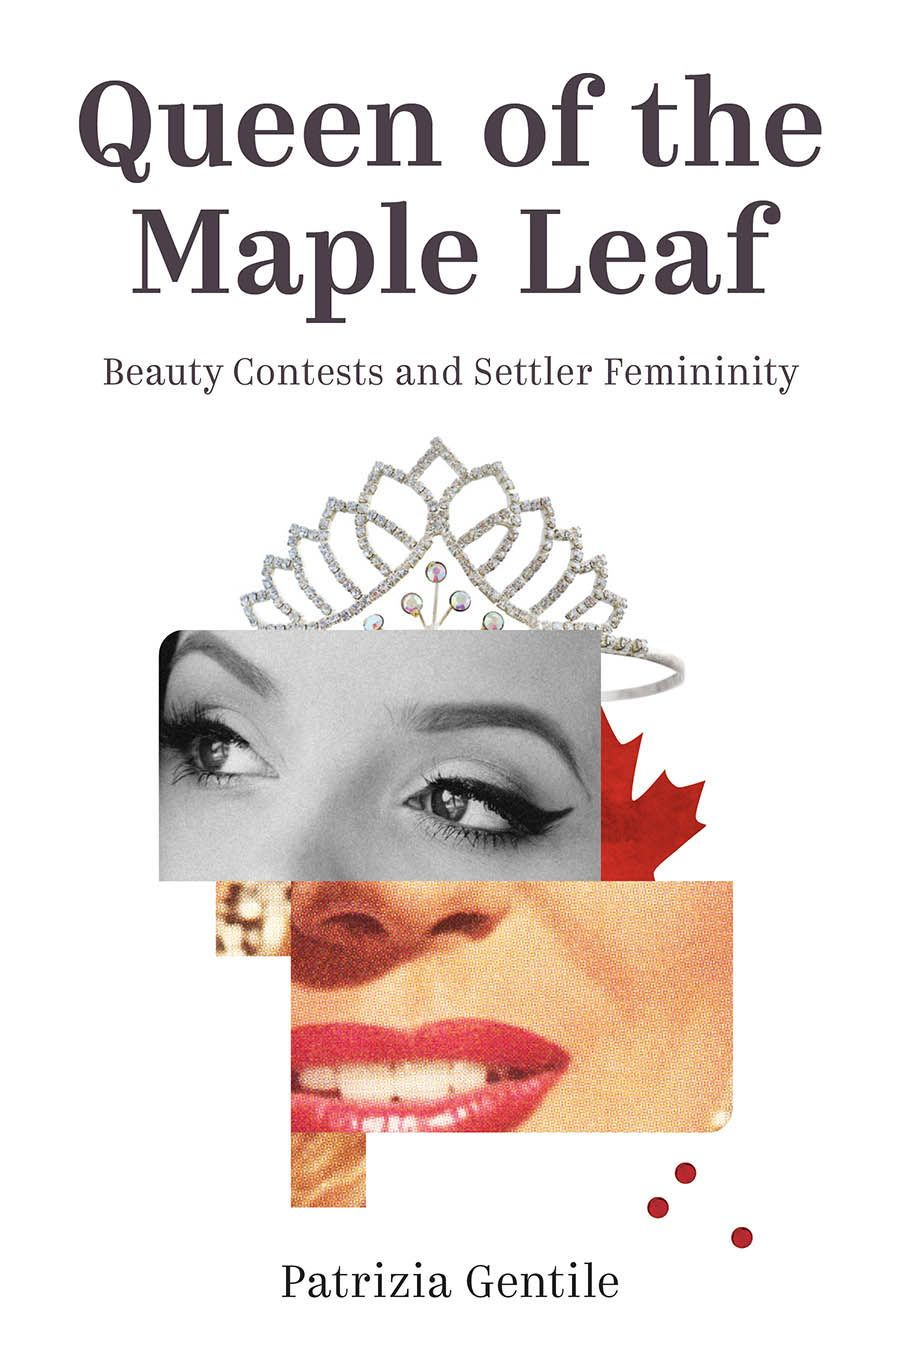 Queen of the Maple Leaf: Beauty Contests and Settler Femininity